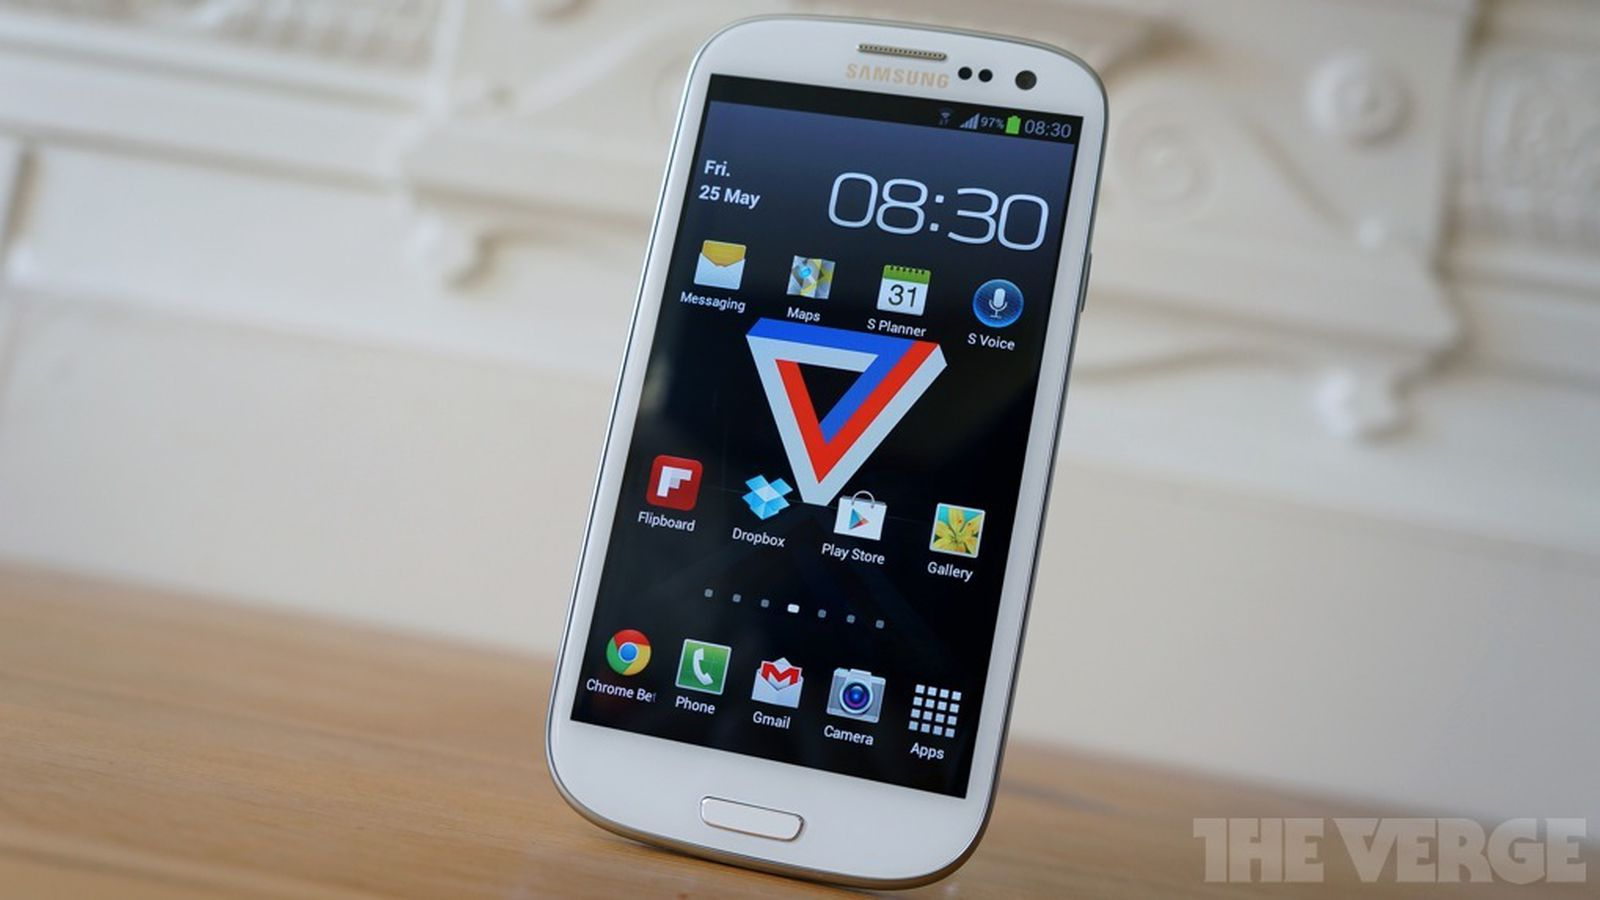 samsung galaxy s iii review | the verge